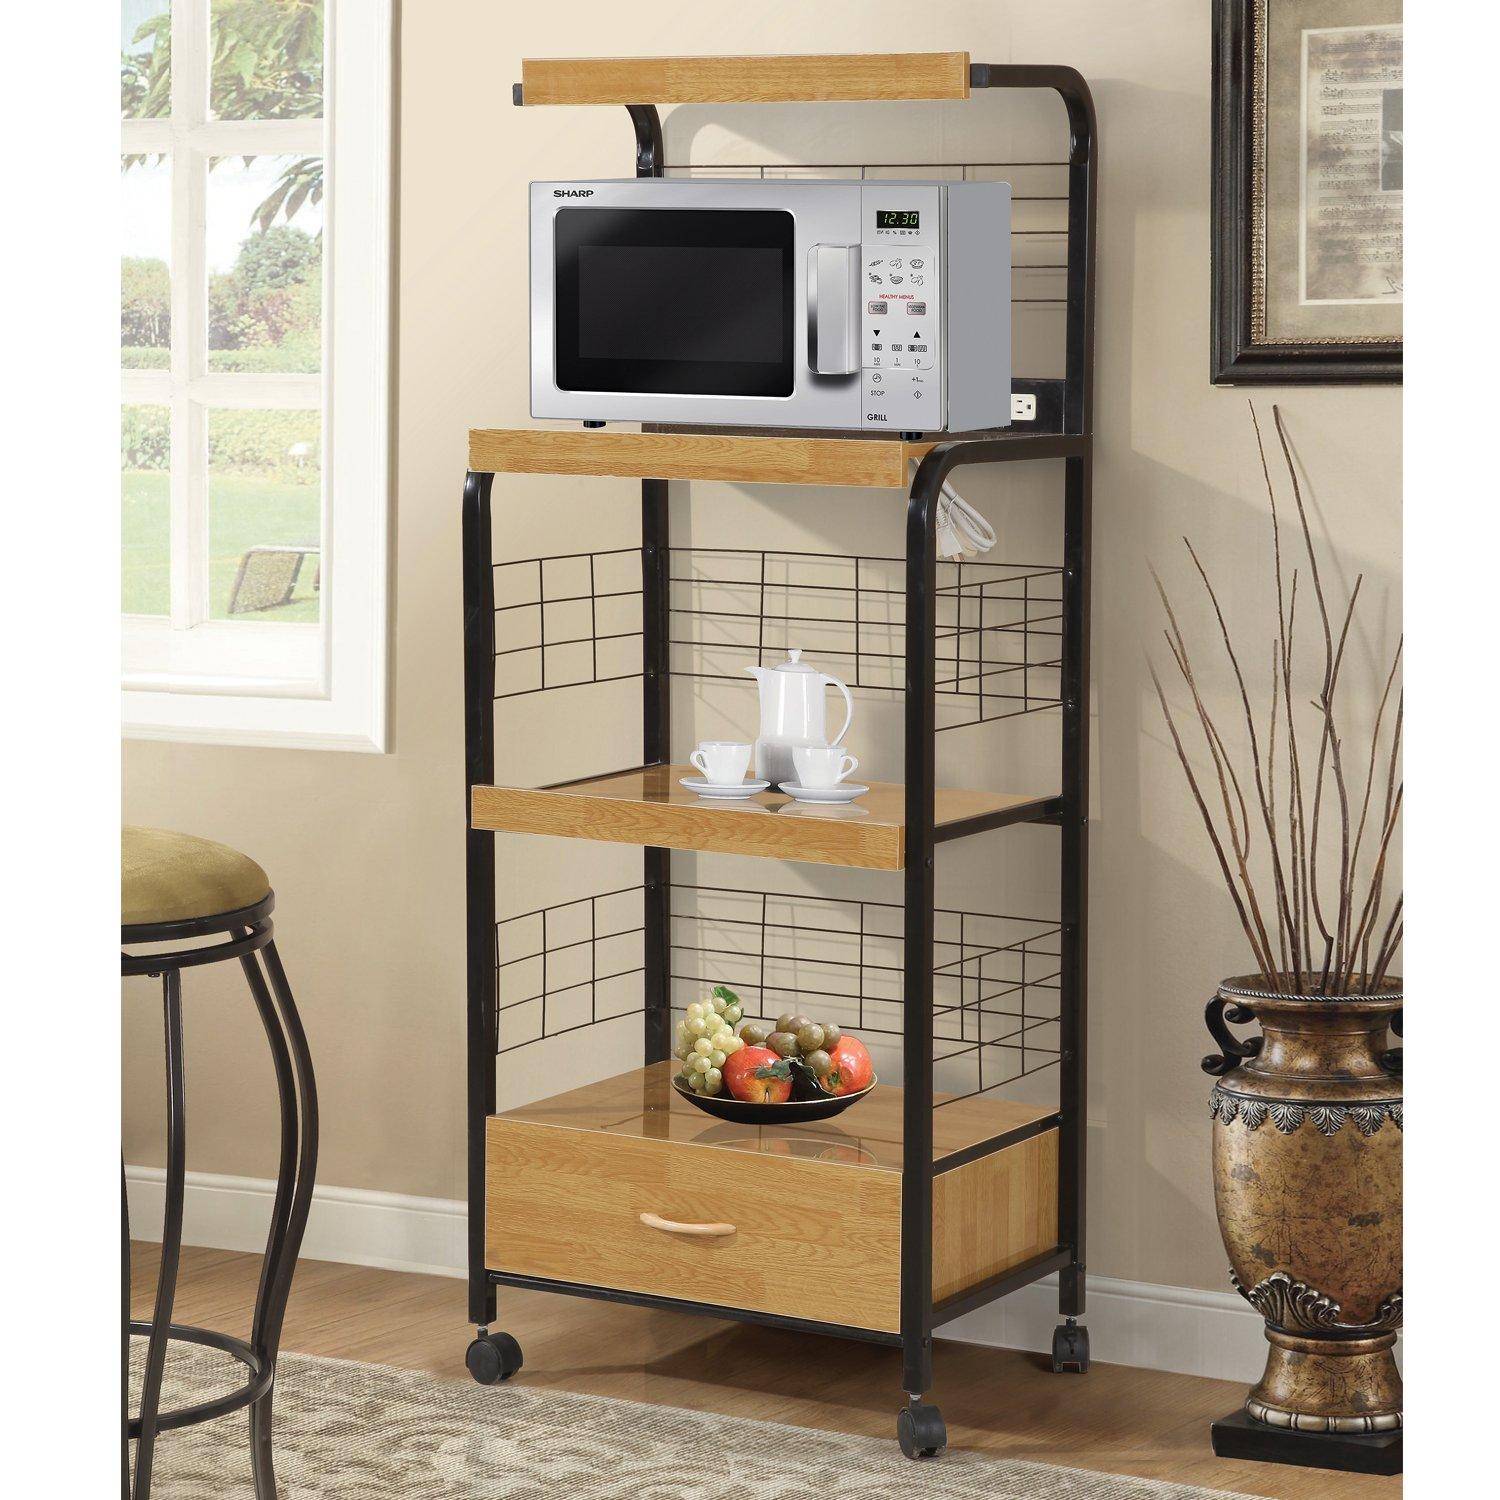 Home Source Industries 4403 Metal Microwave Cart with 2 Electrical Outlets, Black with Light Wood Trim